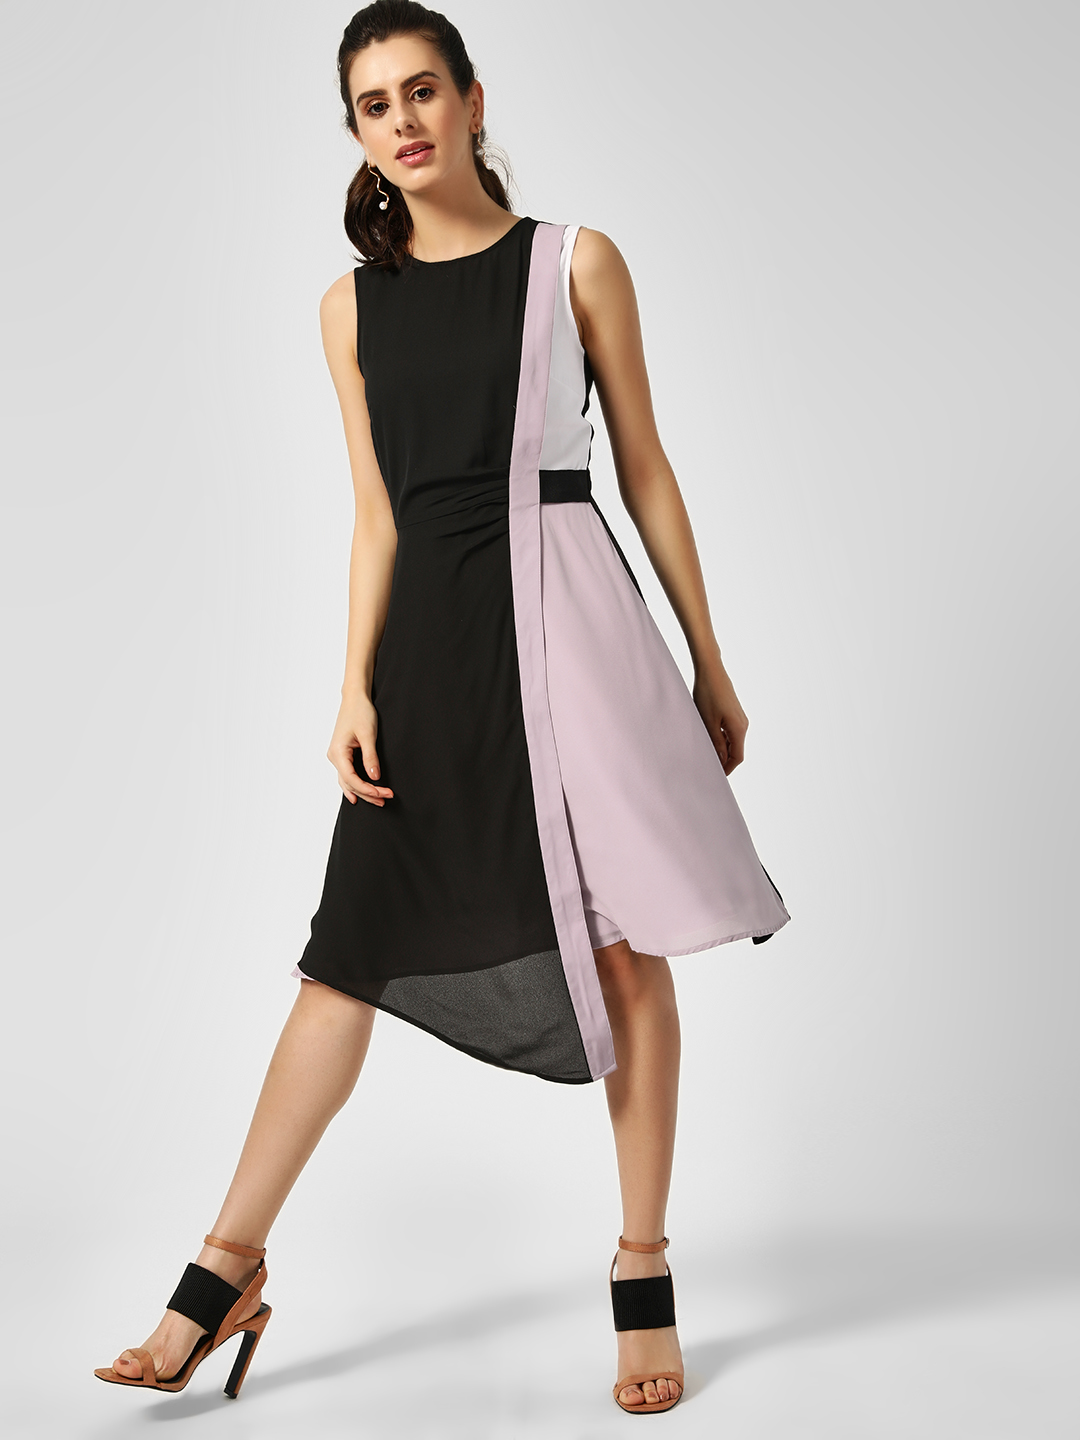 KOOVS Multi Colour Block Asymmetric Dress 1